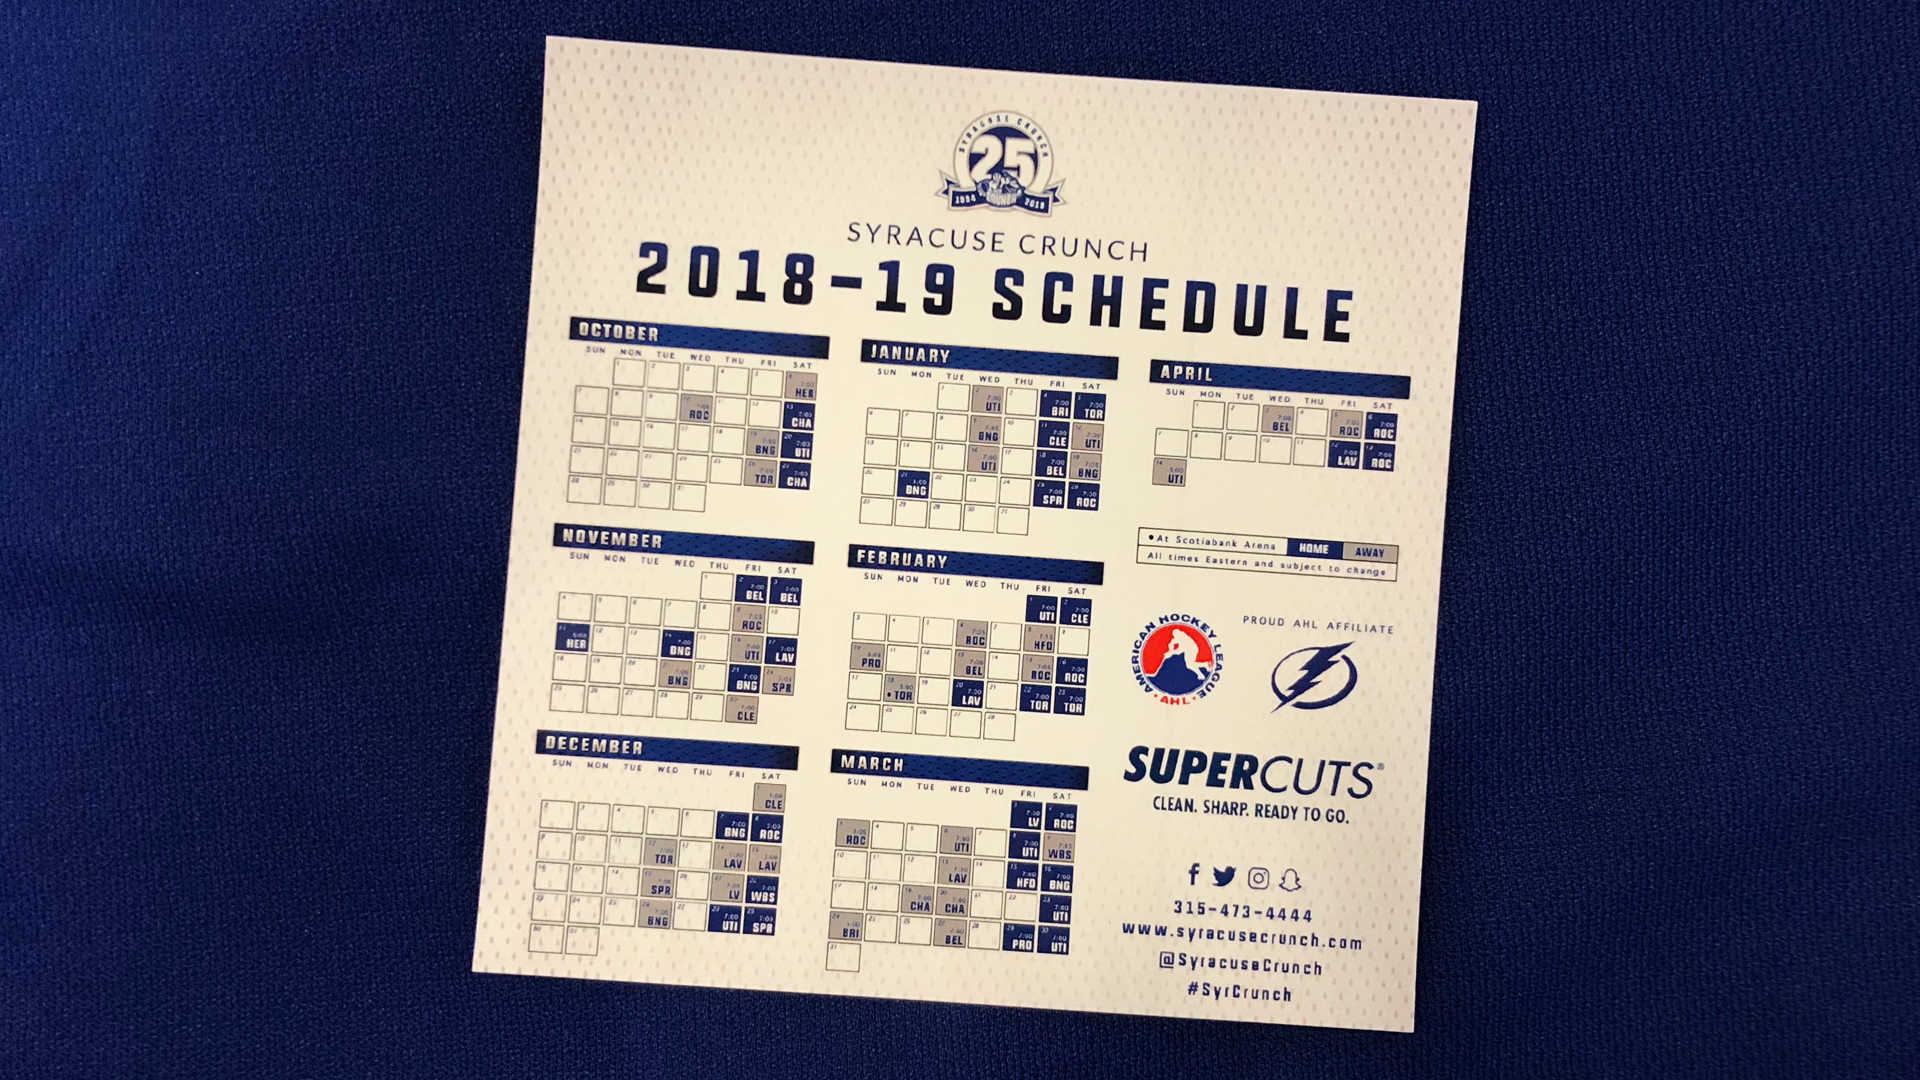 syracuse crunch to hold magnet schedule giveaway oct. 20 - syracuse